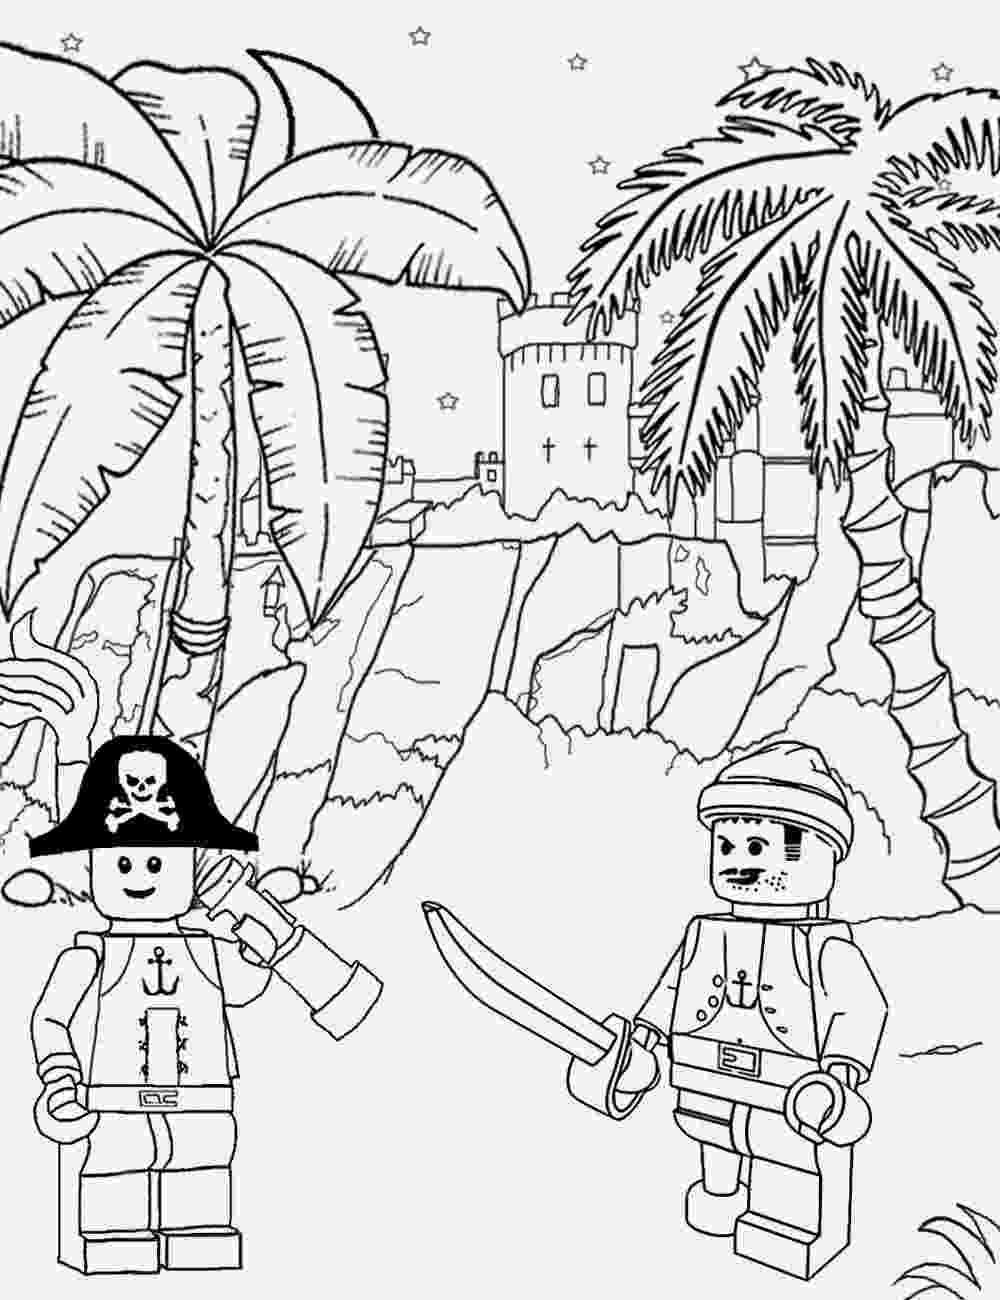 lego figure coloring pages free coloring pages printable pictures to color kids figure lego pages coloring